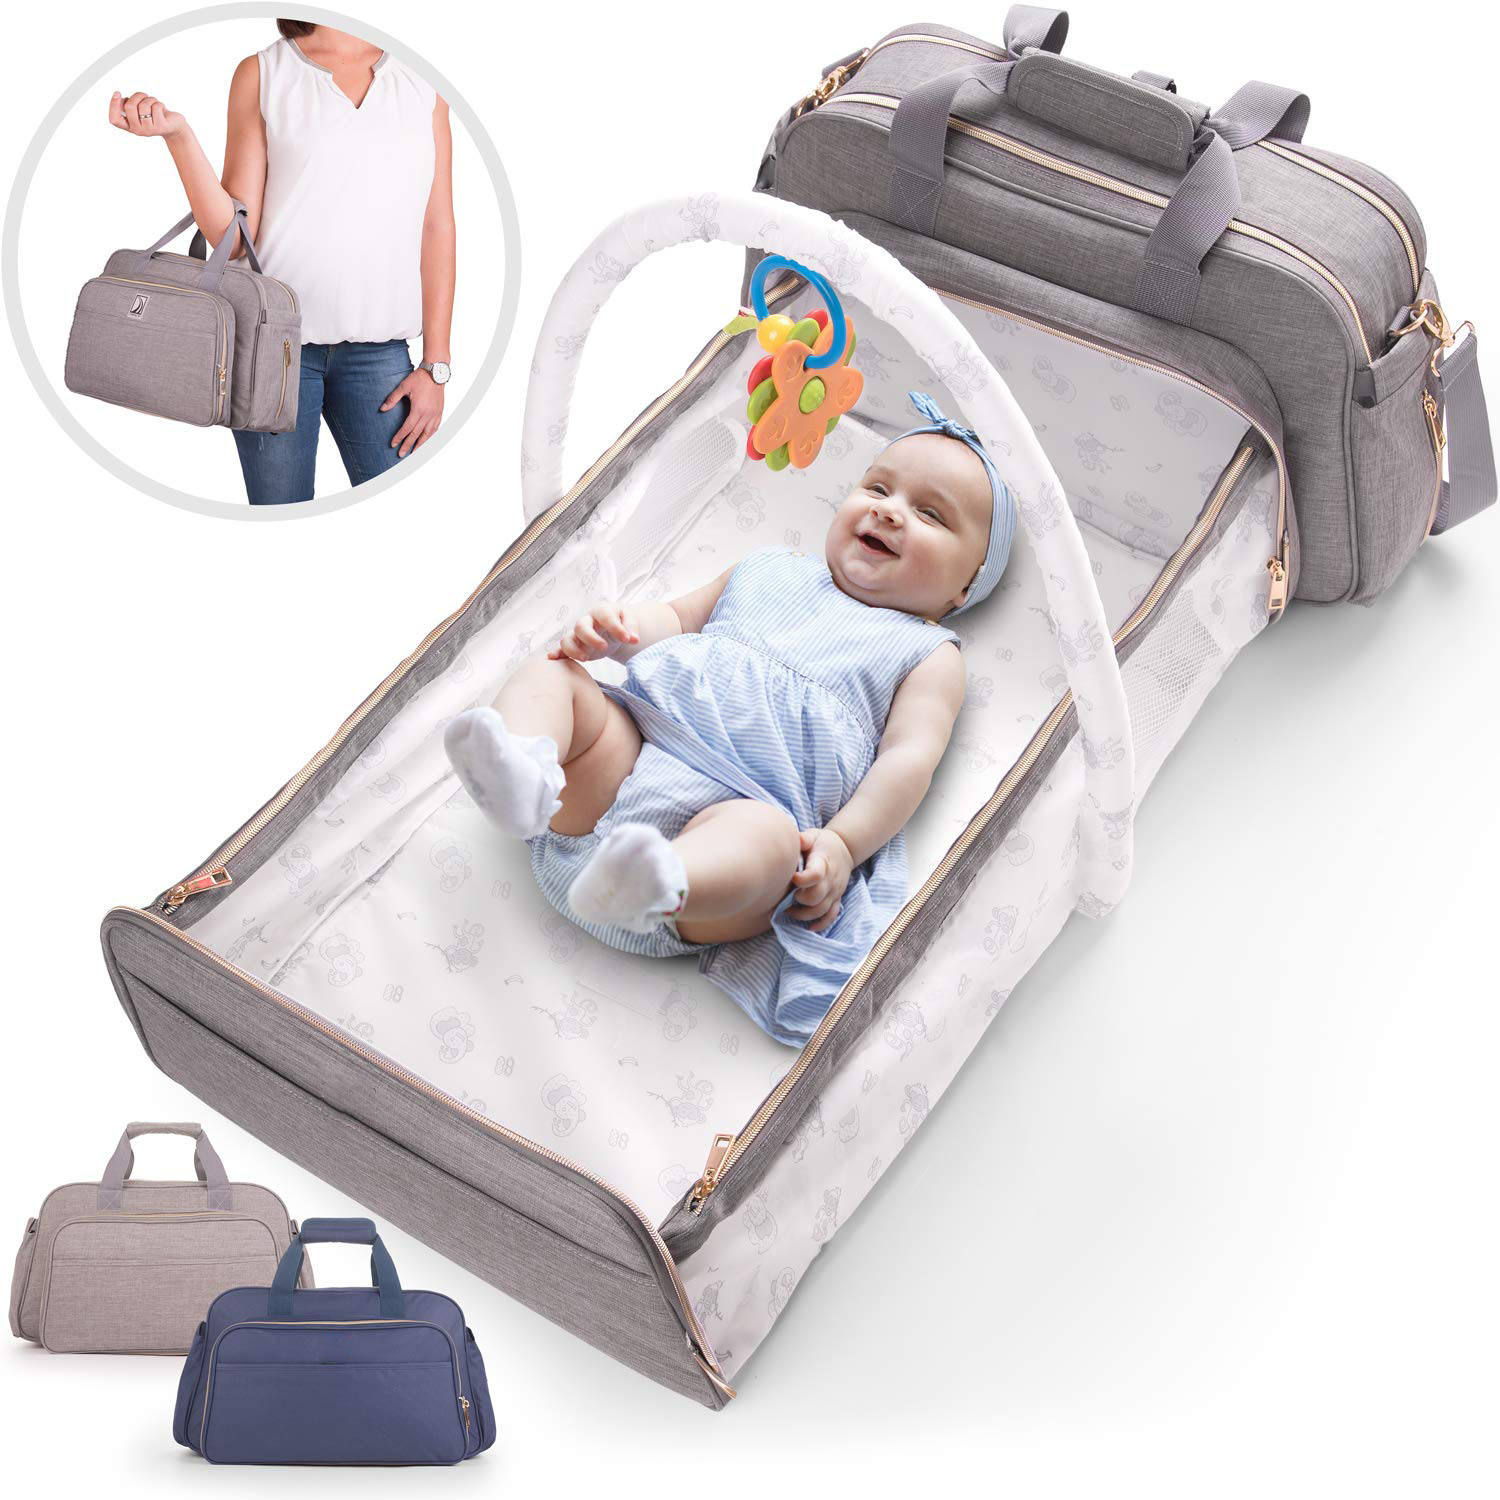 Luxury modern 4 in 1 multifunction travel stroller nappy changing mat pad bag backpack baby bags for mothers